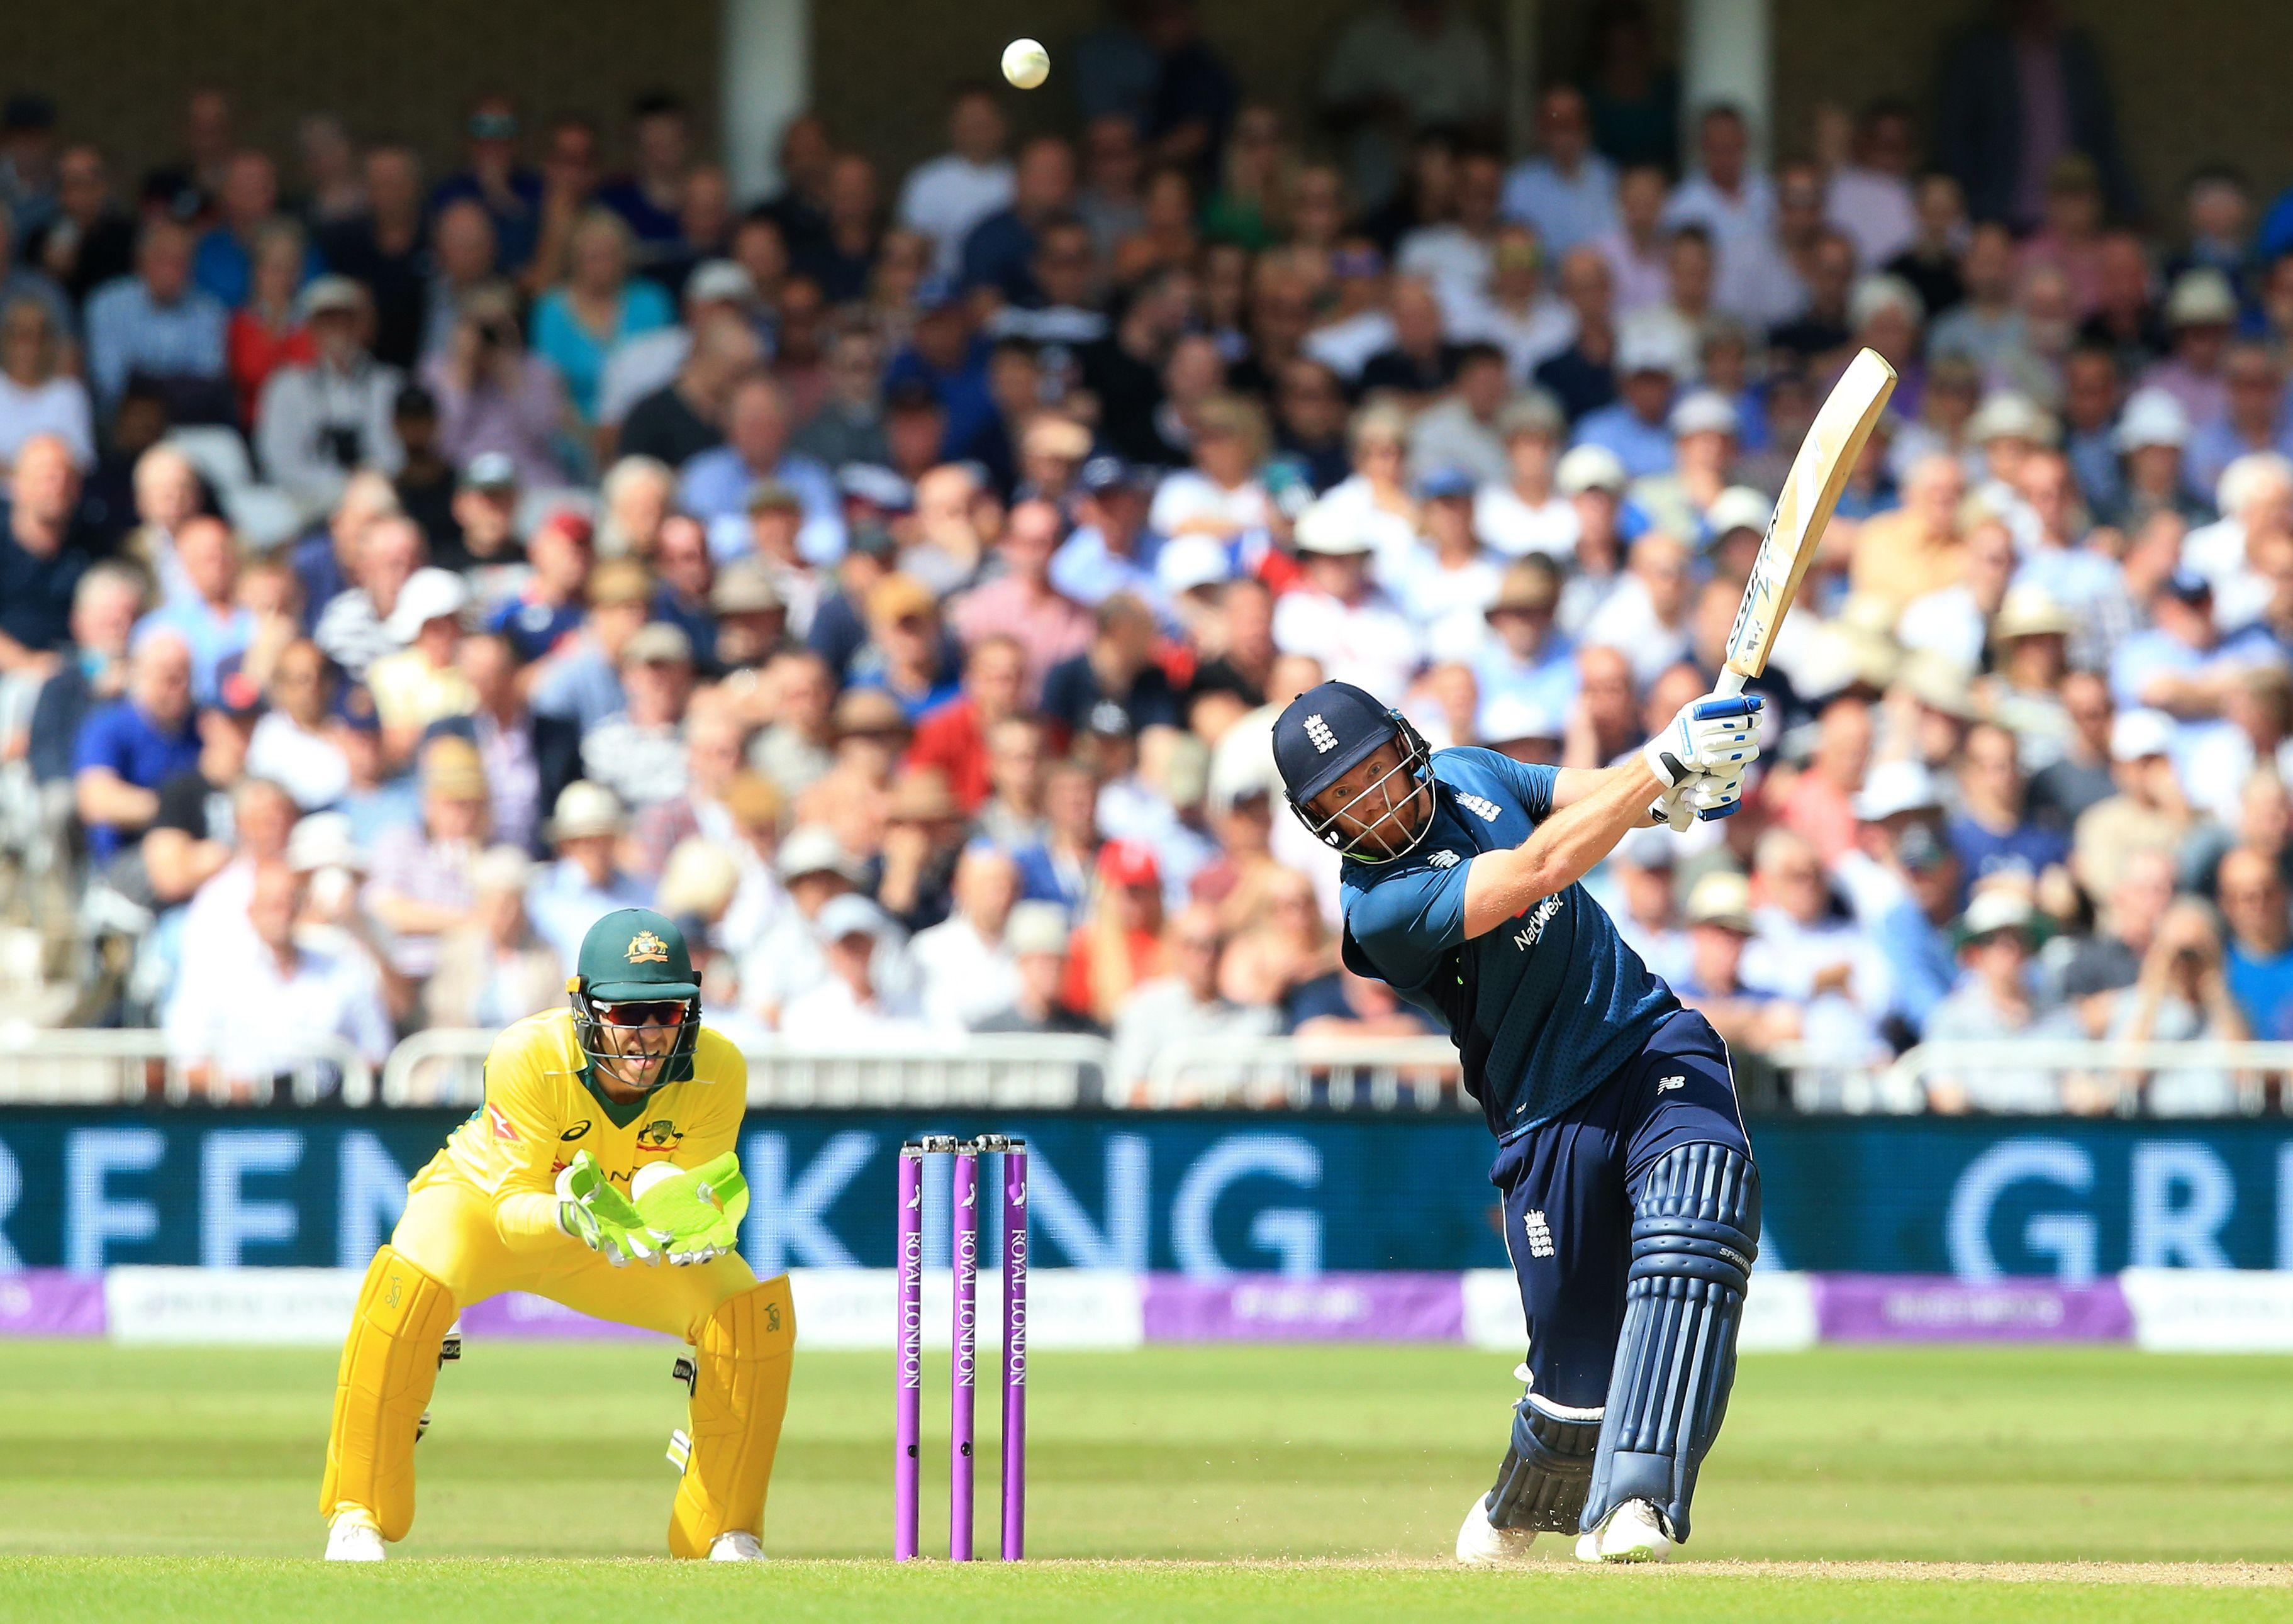 England brutalised Australia's bowling attack on Tuesday